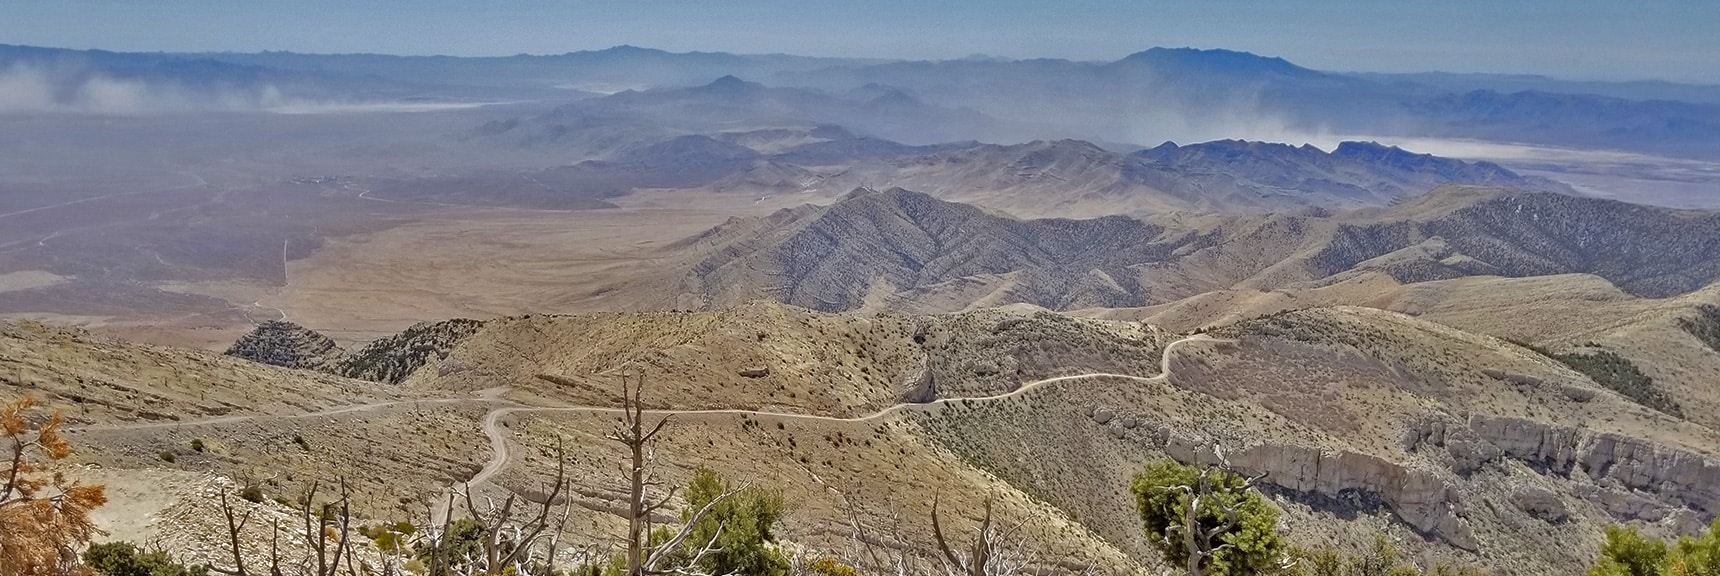 South Summit Approach Road Looking Back to the Place I Topped the Initial Ridge | Potosi Mountain Spring Mountains Nevada